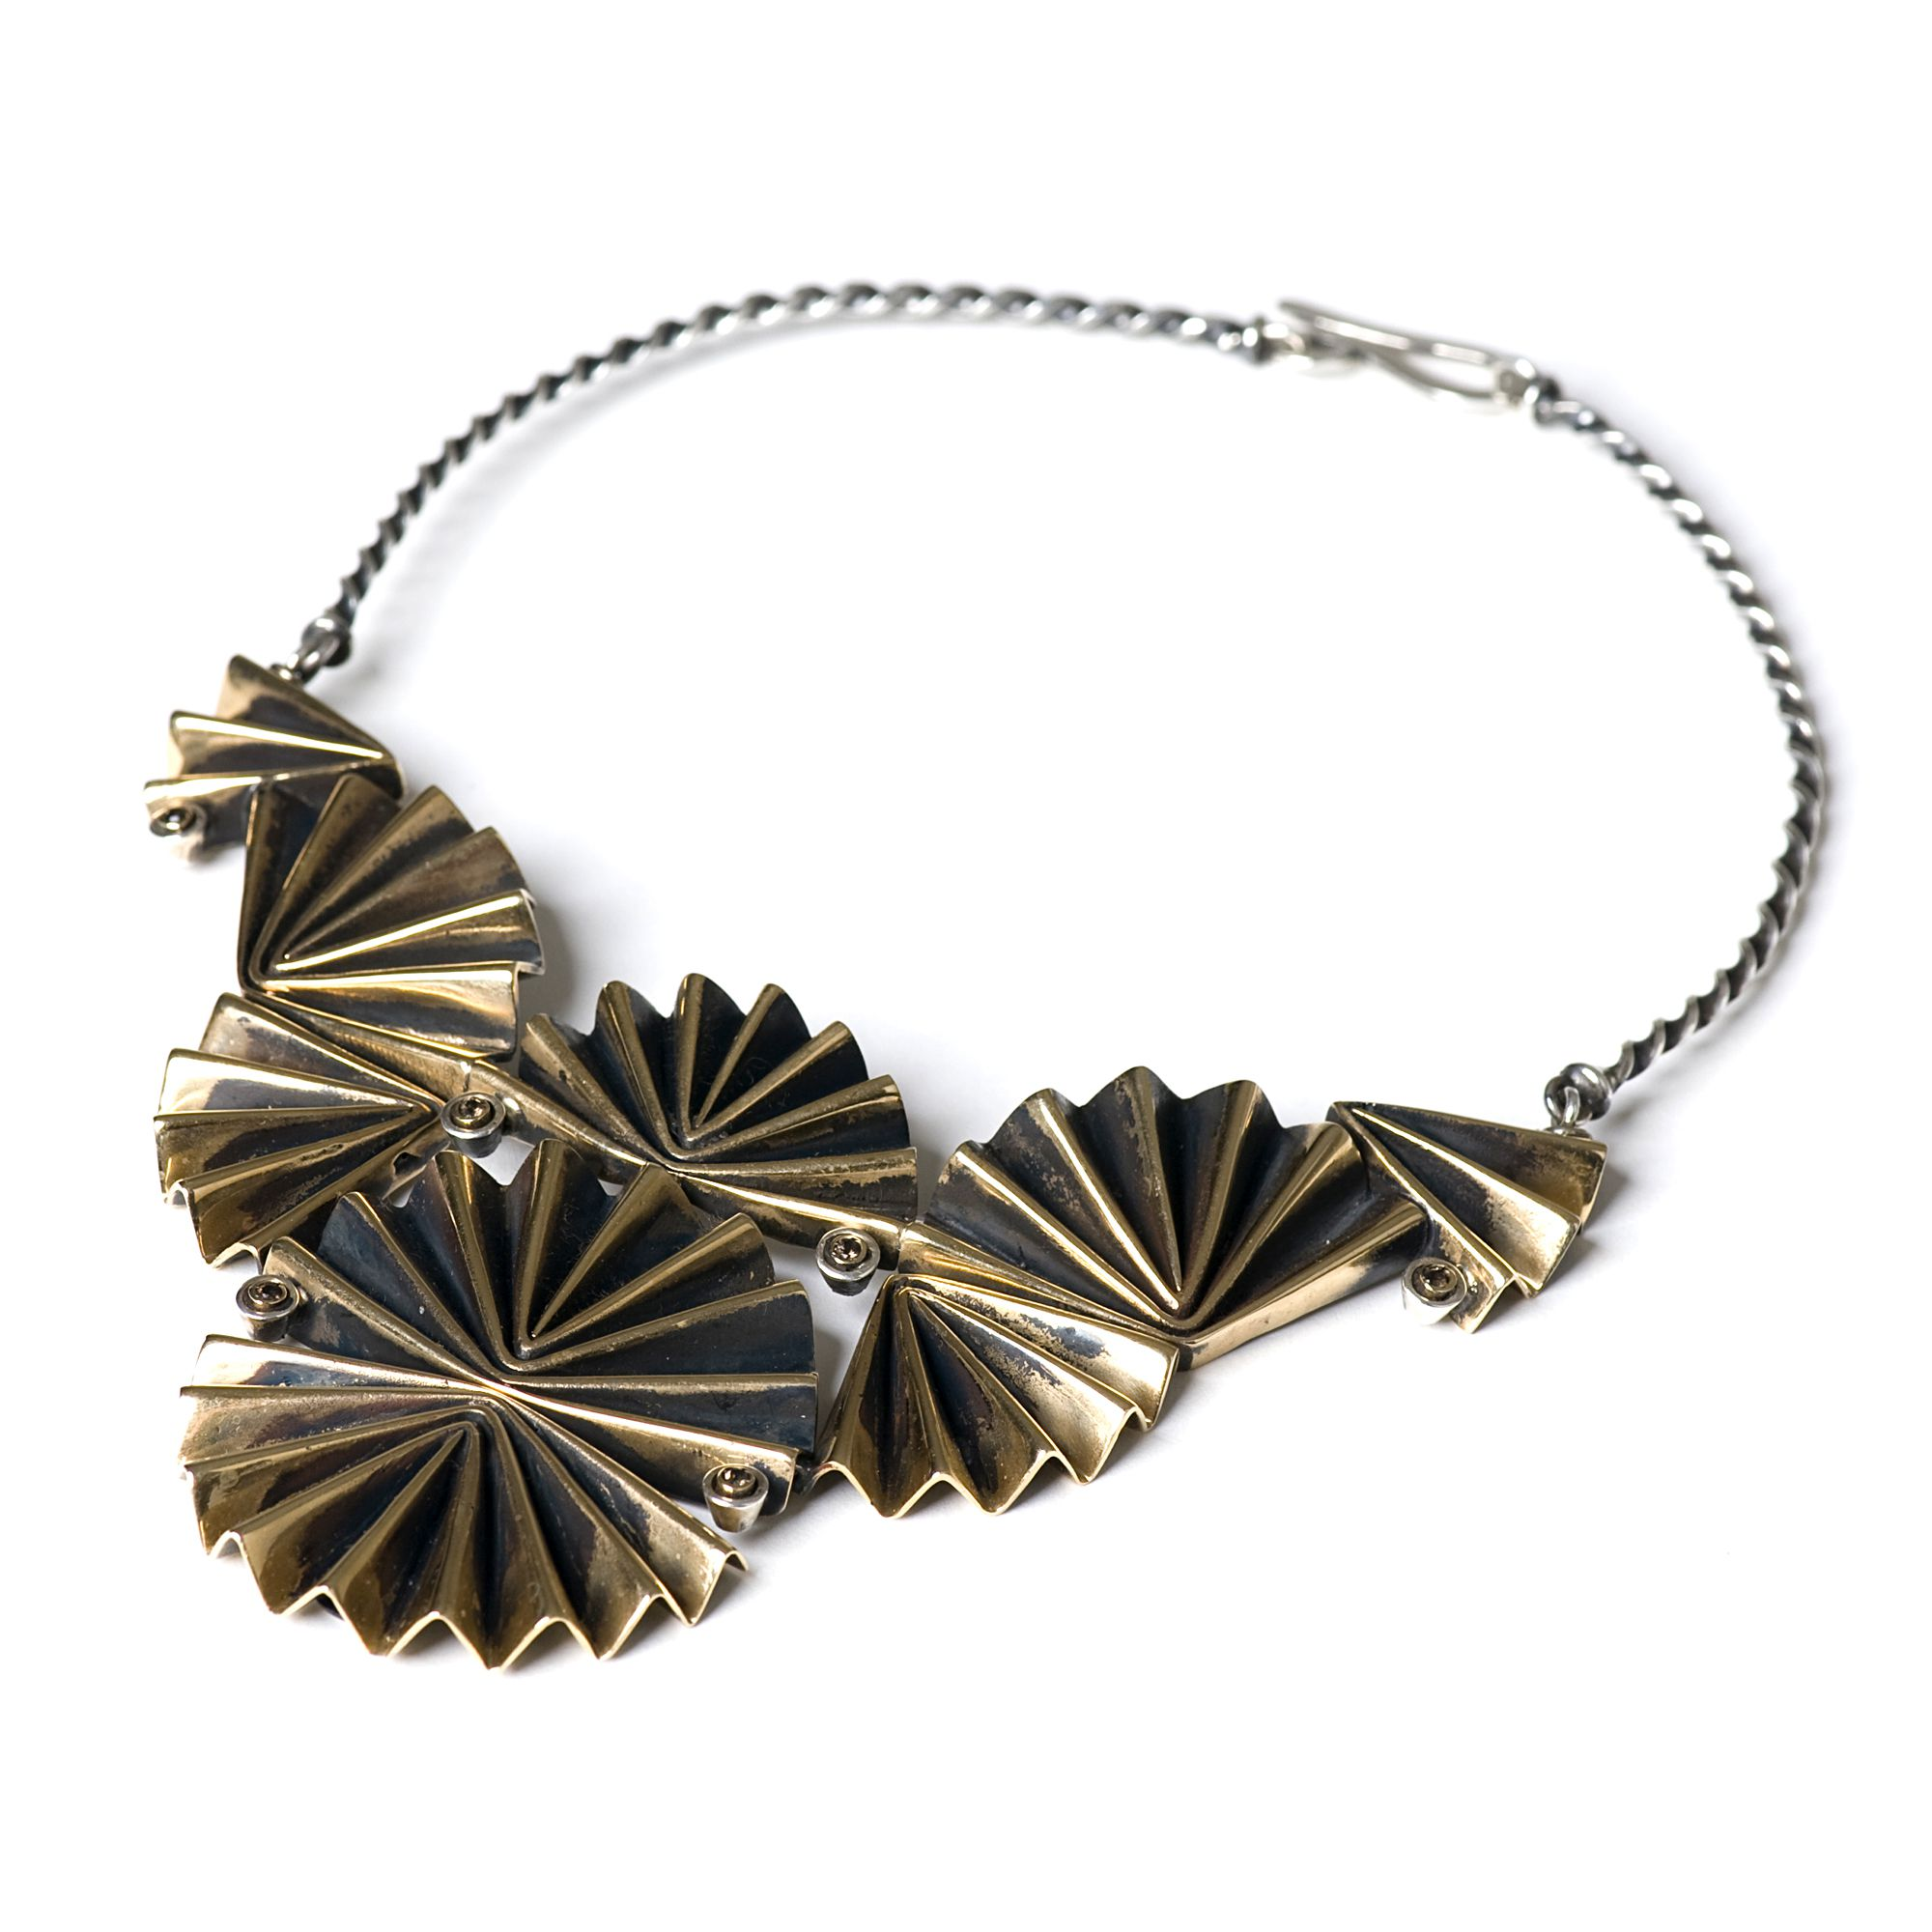 Multi-element 'fan' necklace Necklace in bronze, silver and sapphires